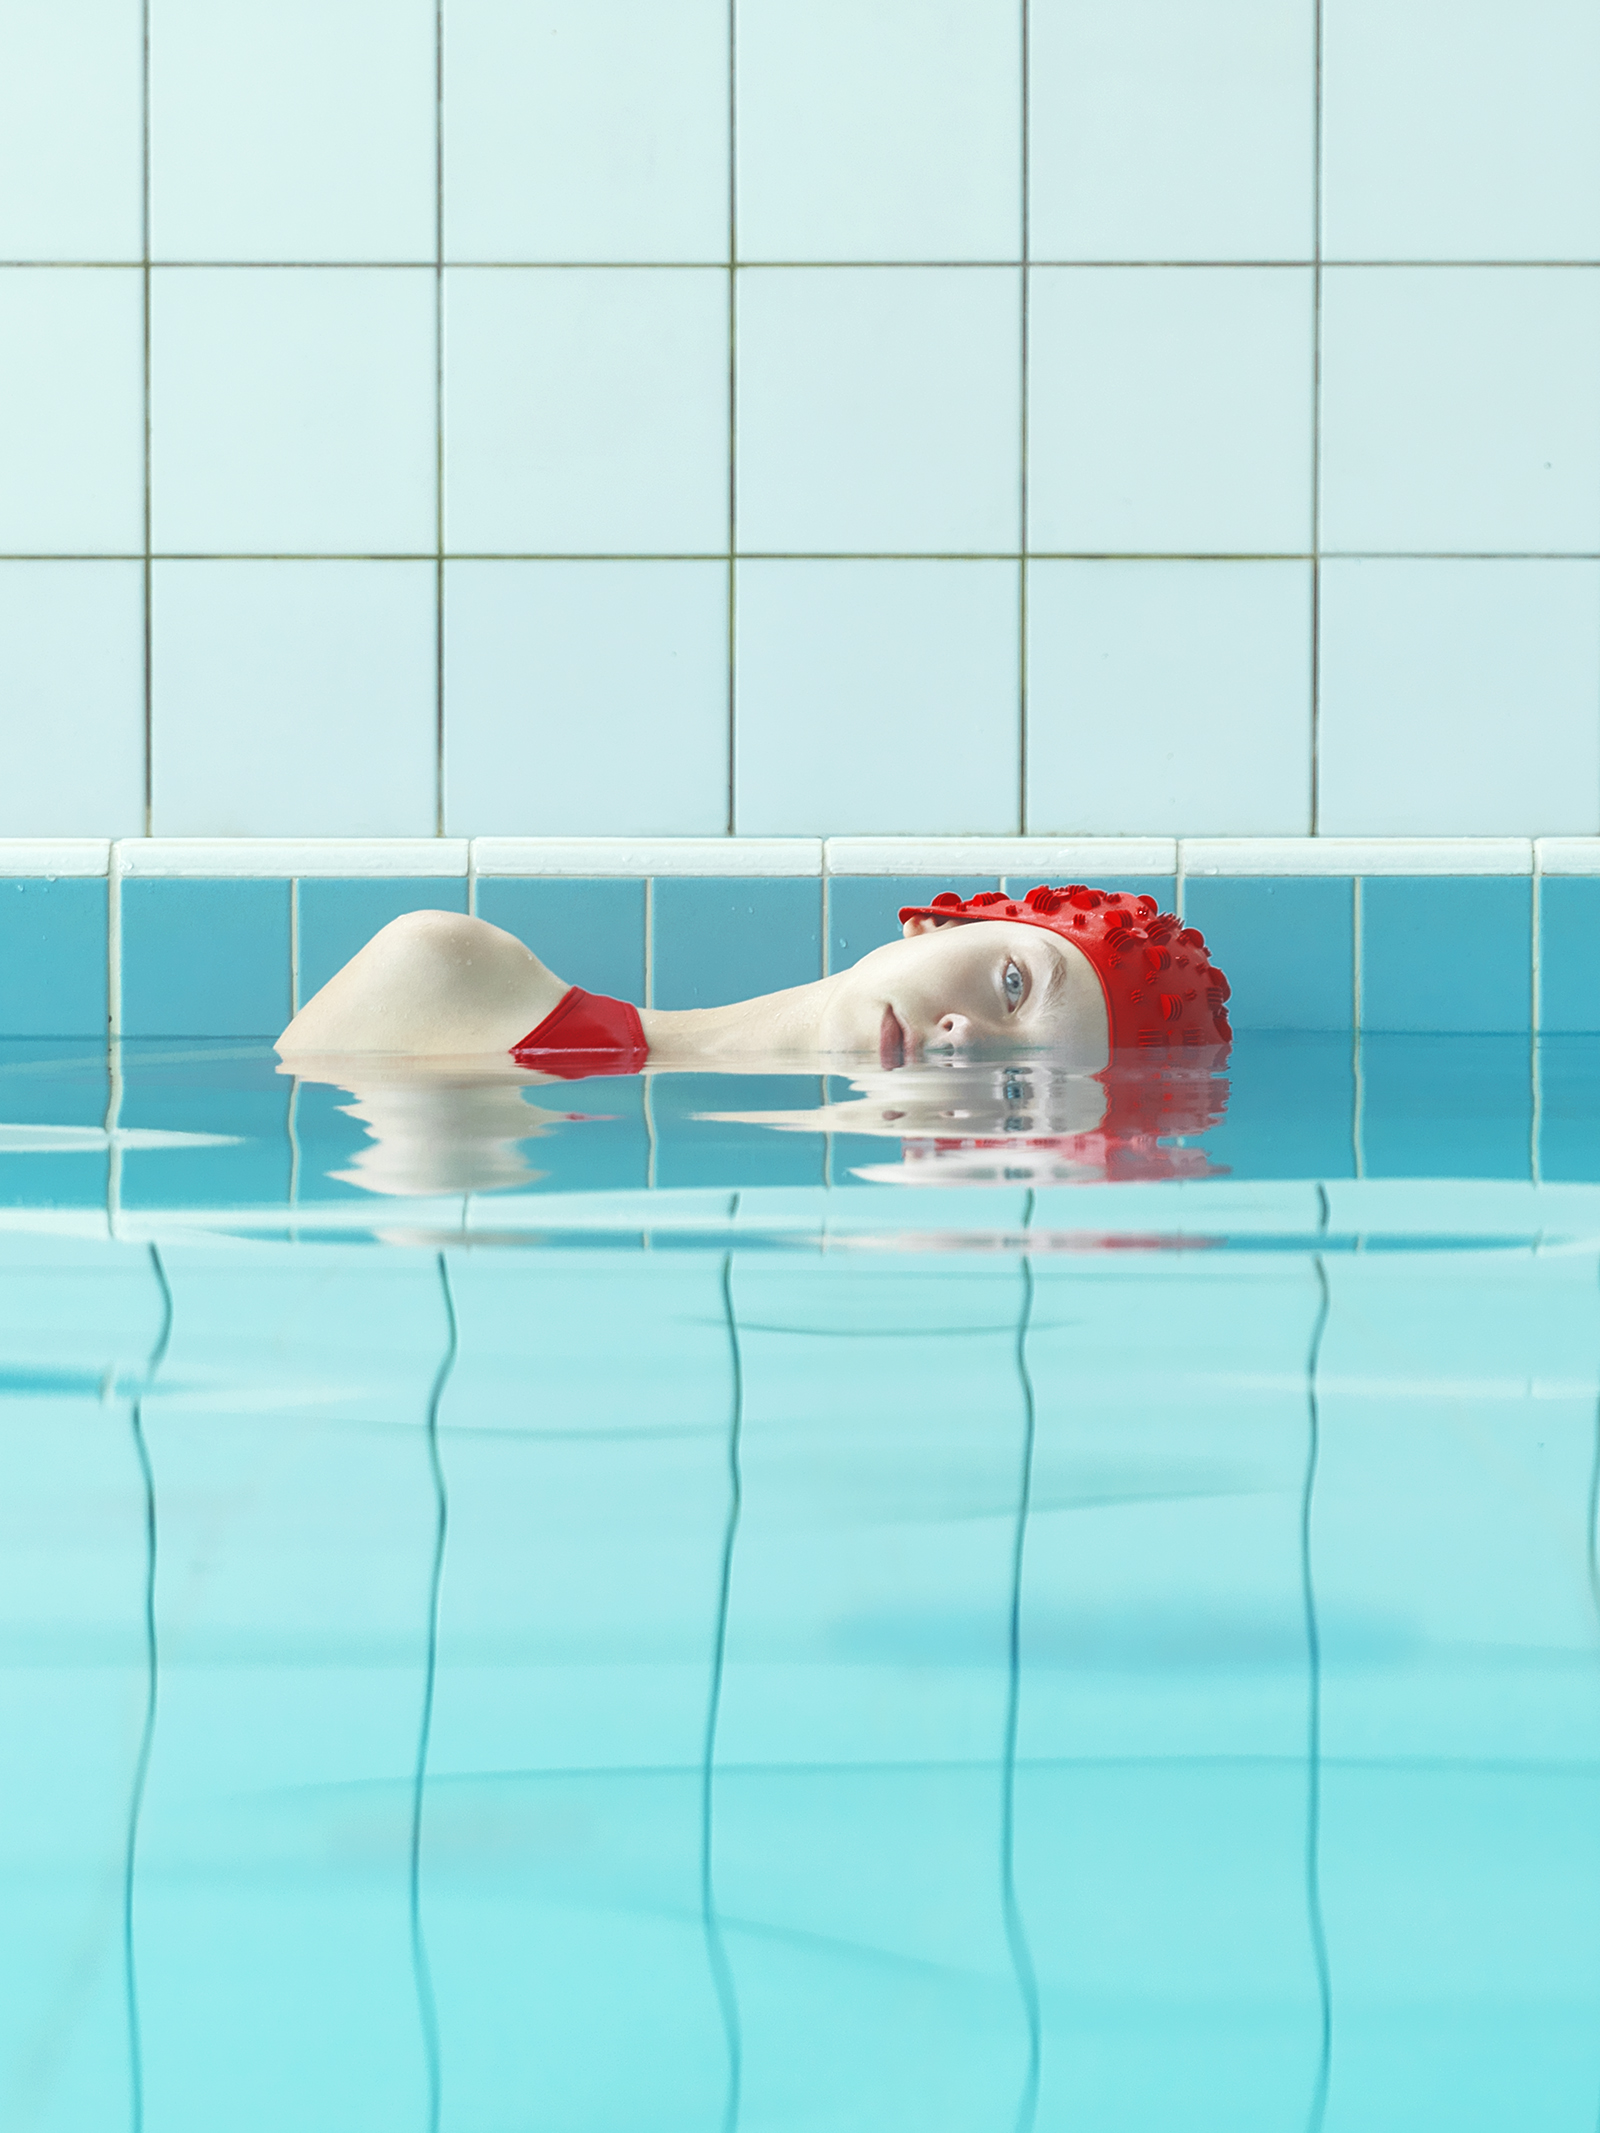 Maria Švarbová finds beauty and serenity in swimming pools ...